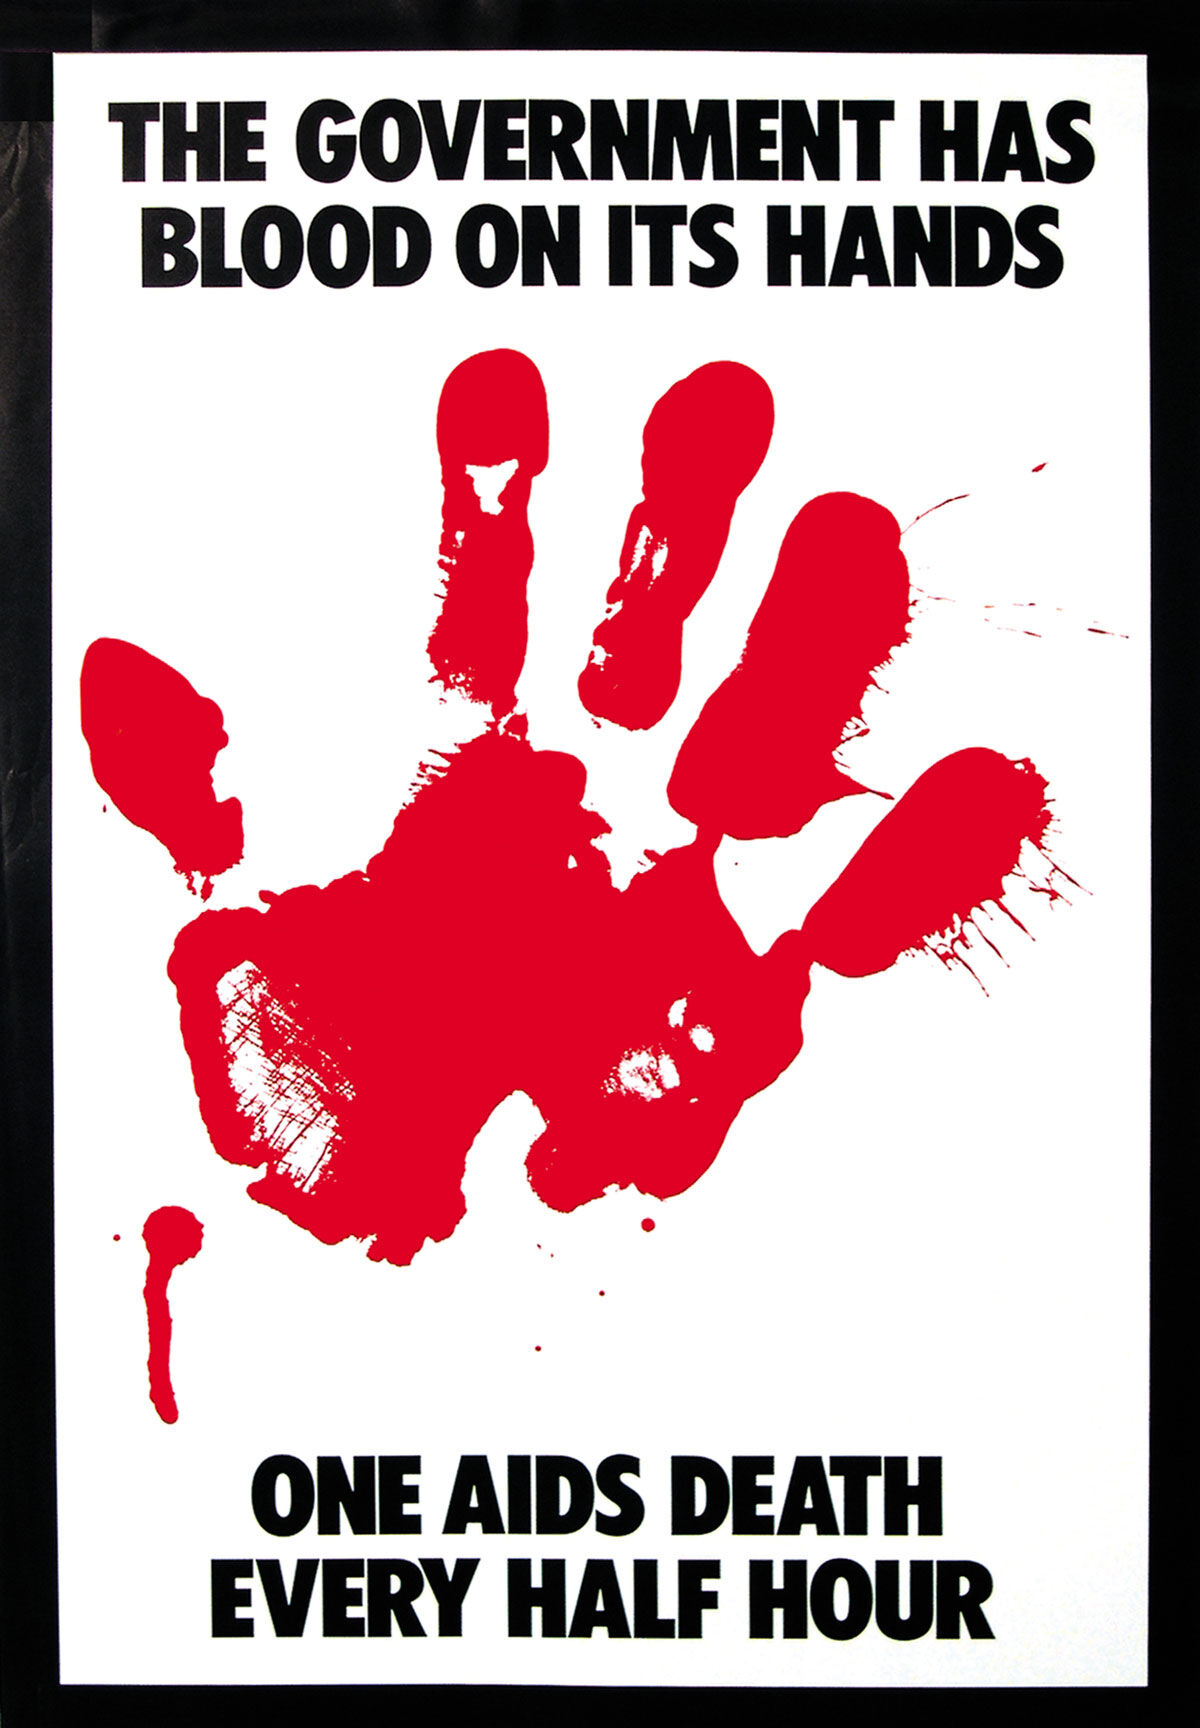 Gran Fury, The Government Has Blood On Its Hands, 1988. Courtesy of Avram Finkelstein.